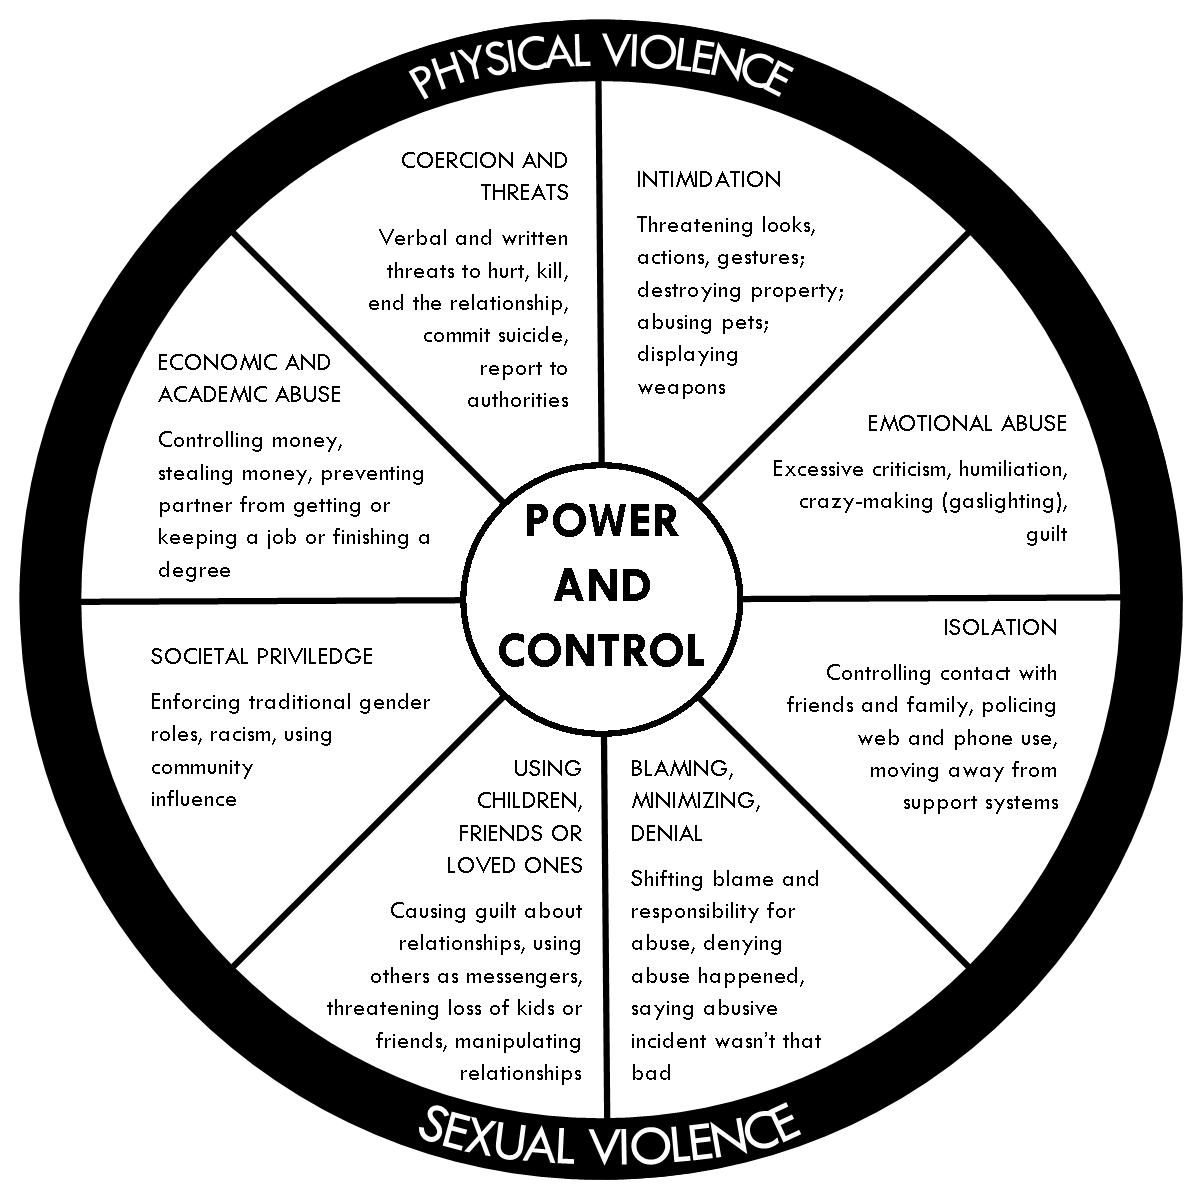 college relationship power and control wheel